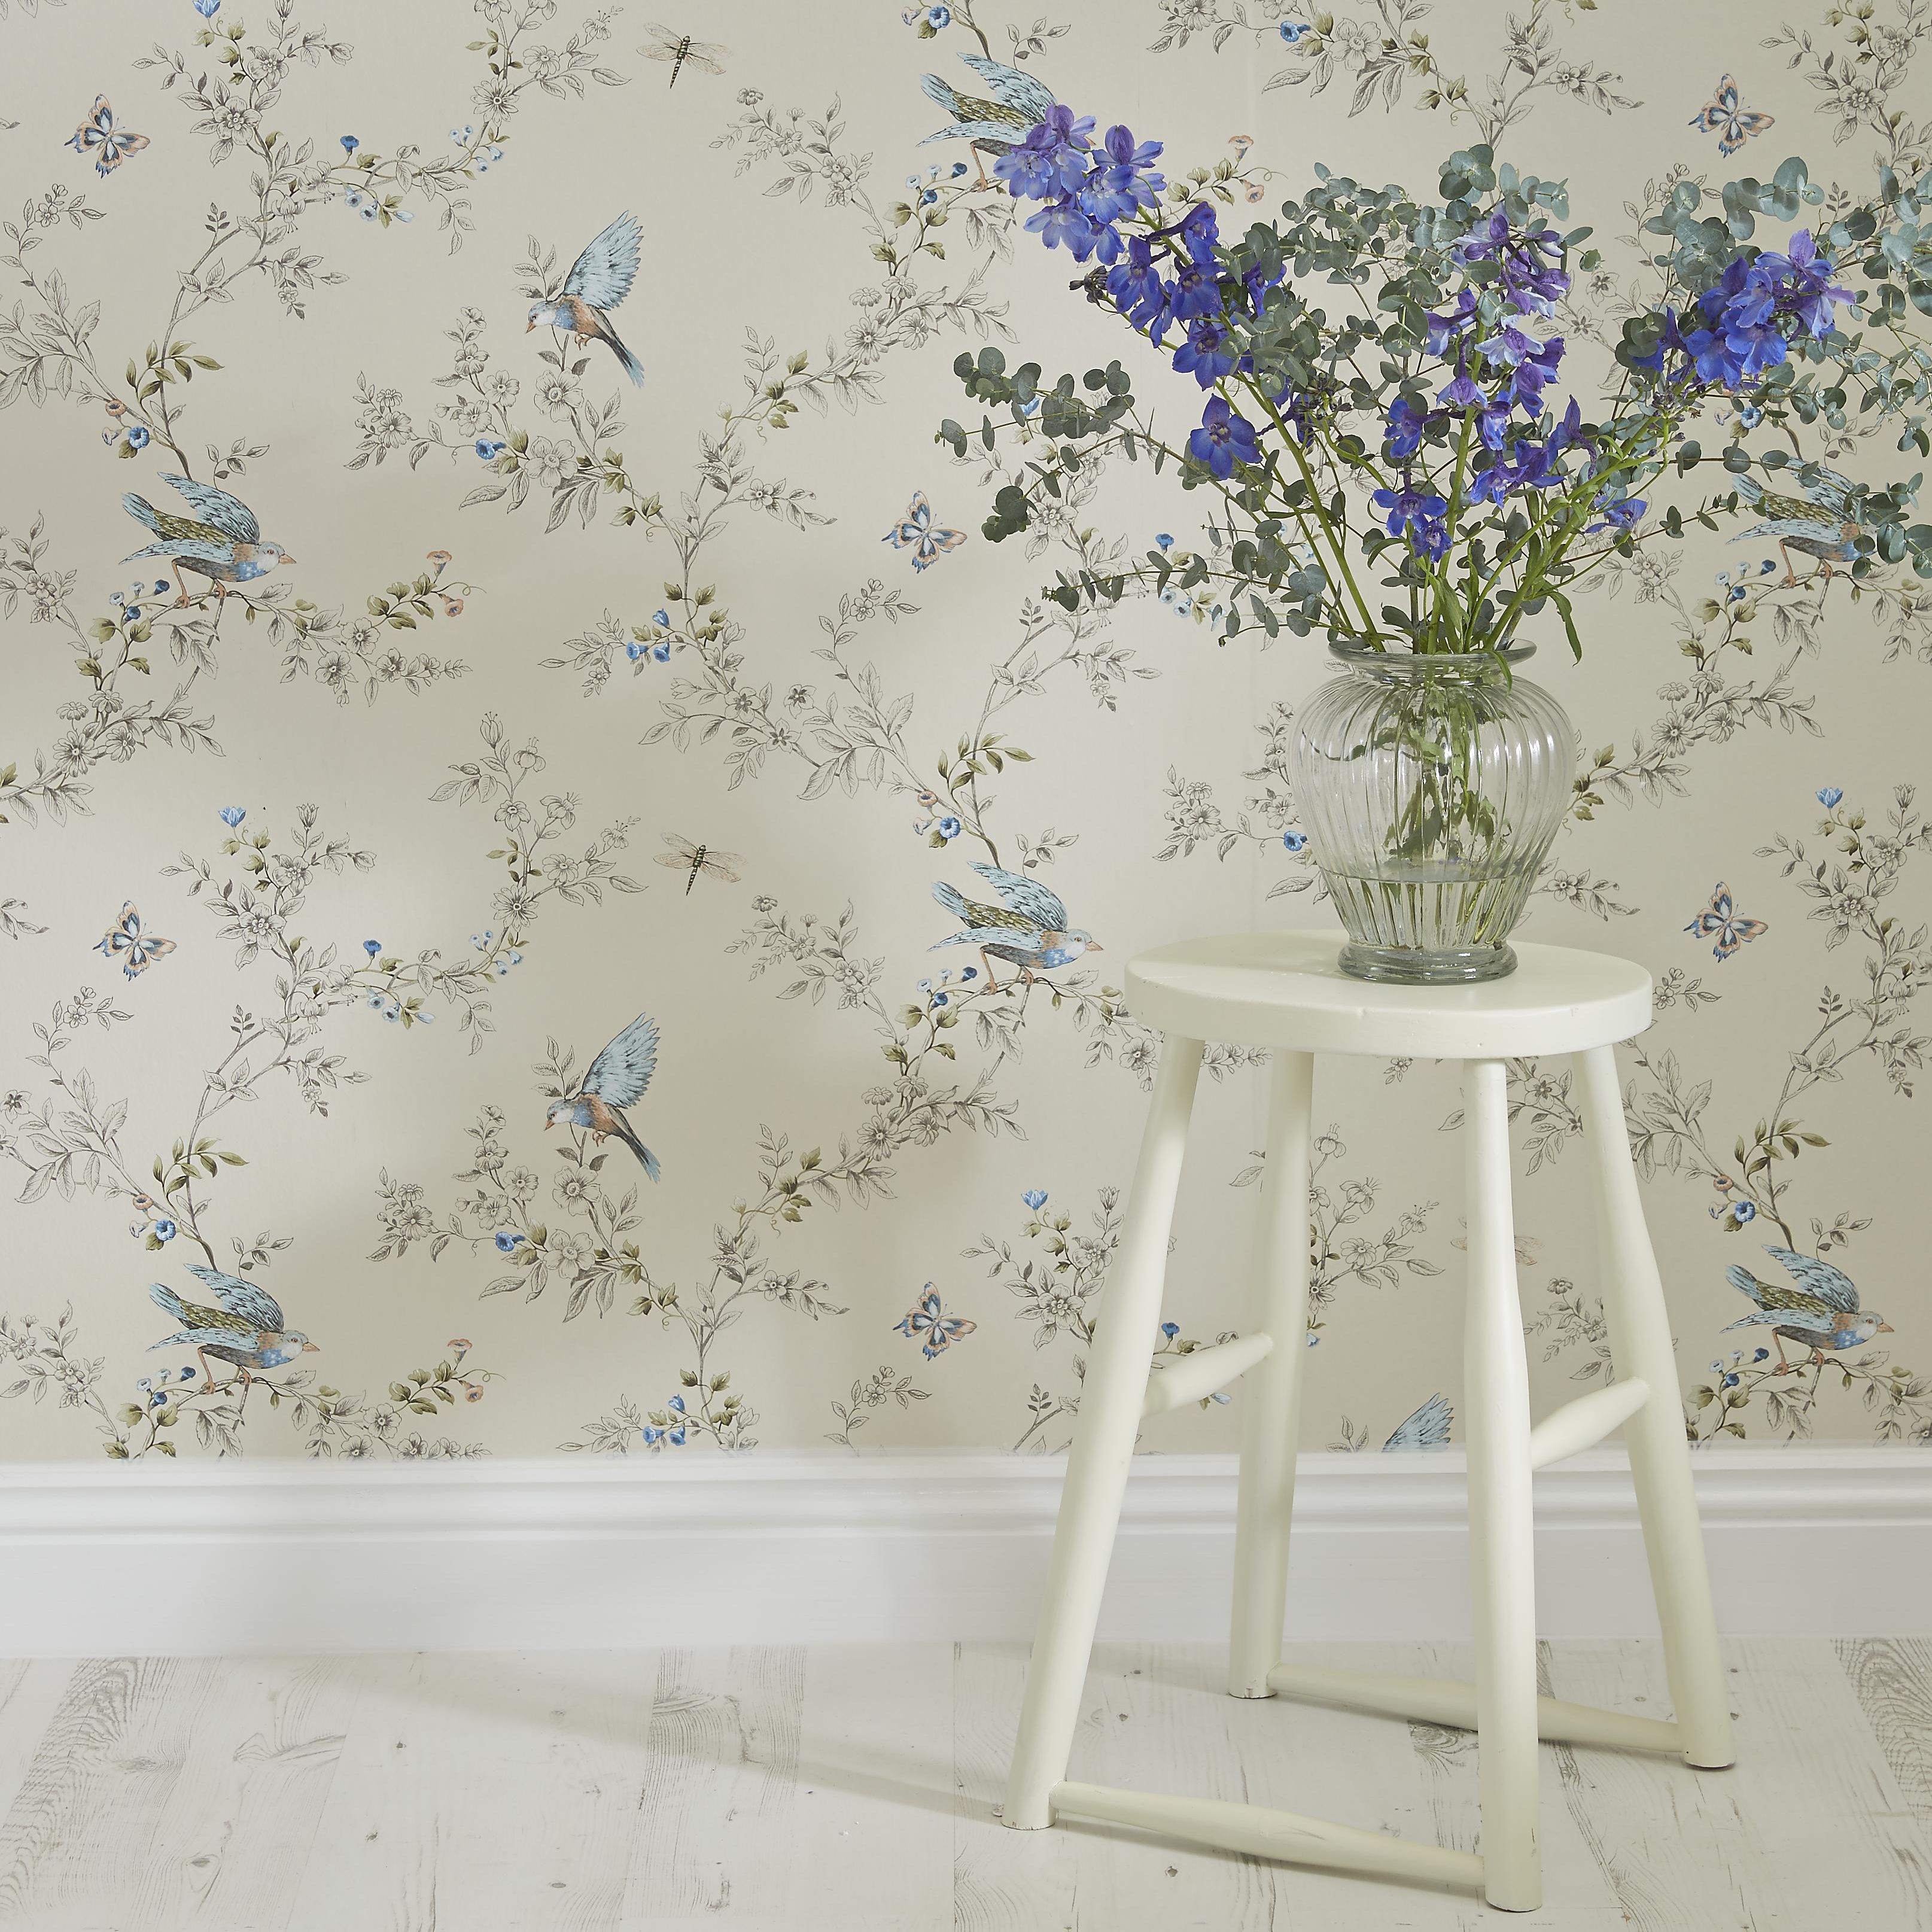 Borders for wallpaper: types, advice on choosing, sticking rules 67